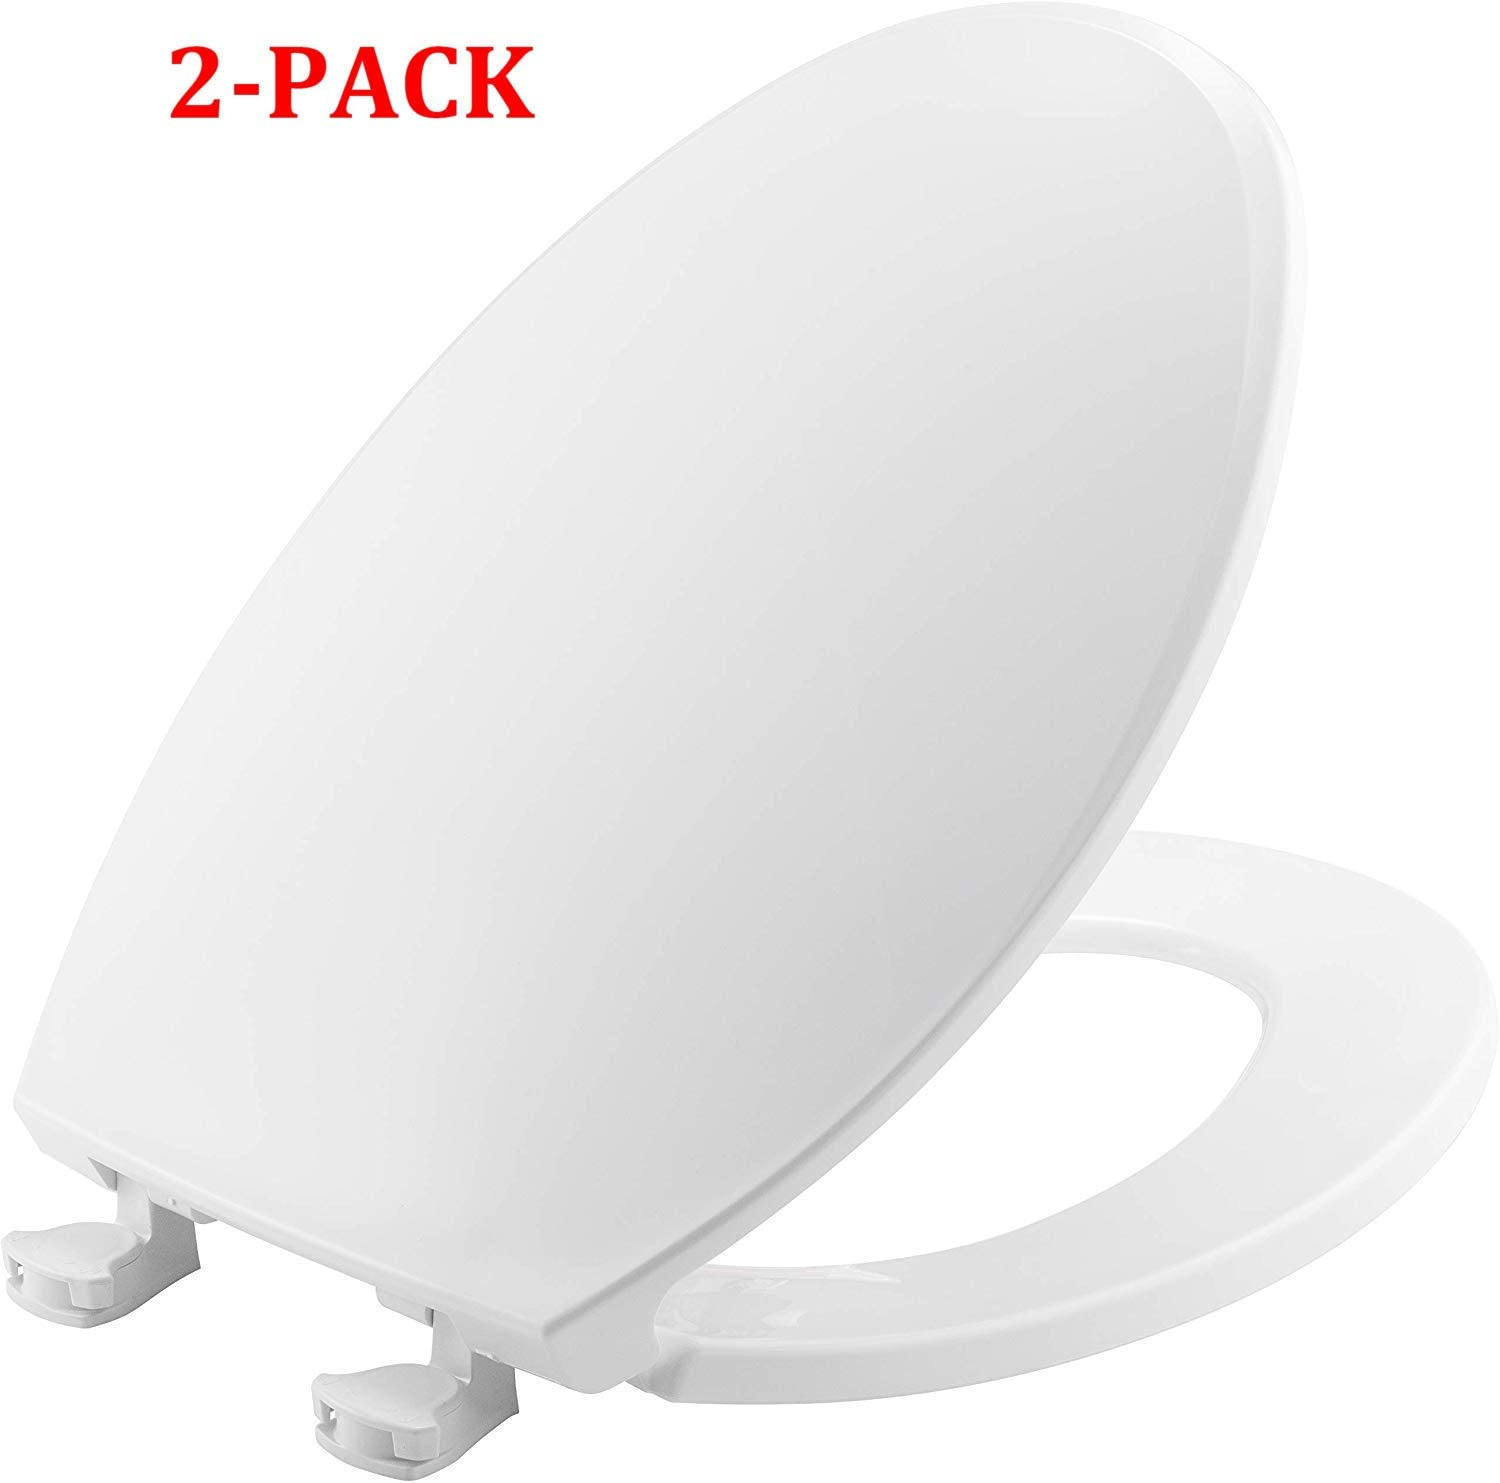 ELONGATED PACK OF 2 BEMIS 1800EC 000 Plastic Toilet Seat with Easy Clean /& Change Hinges White